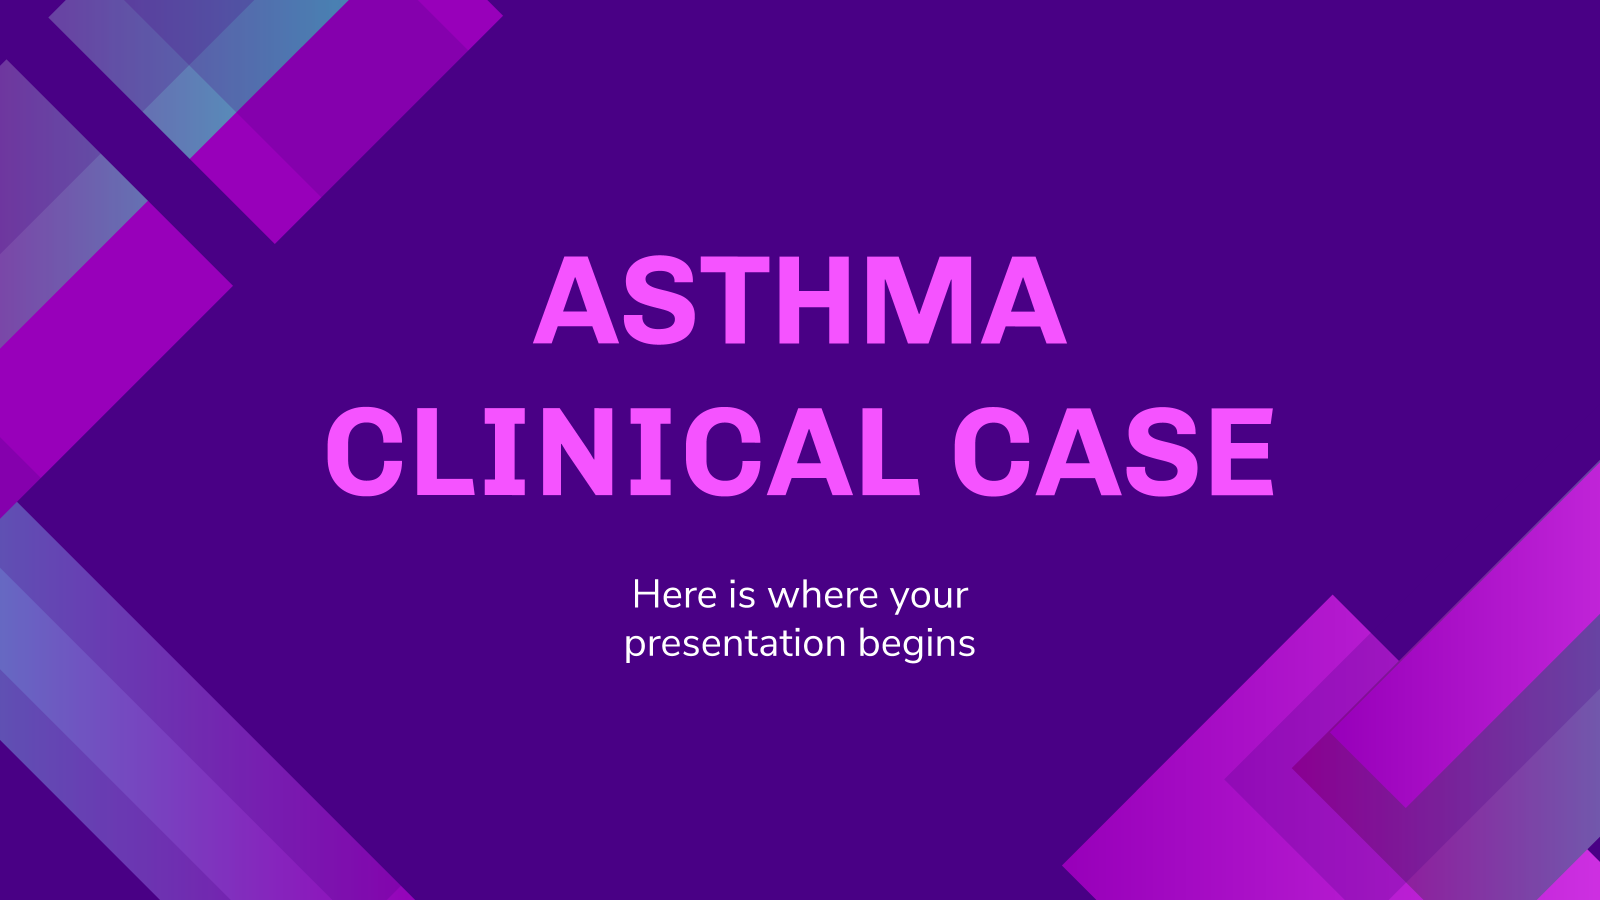 Asthma Clinical Case presentation template